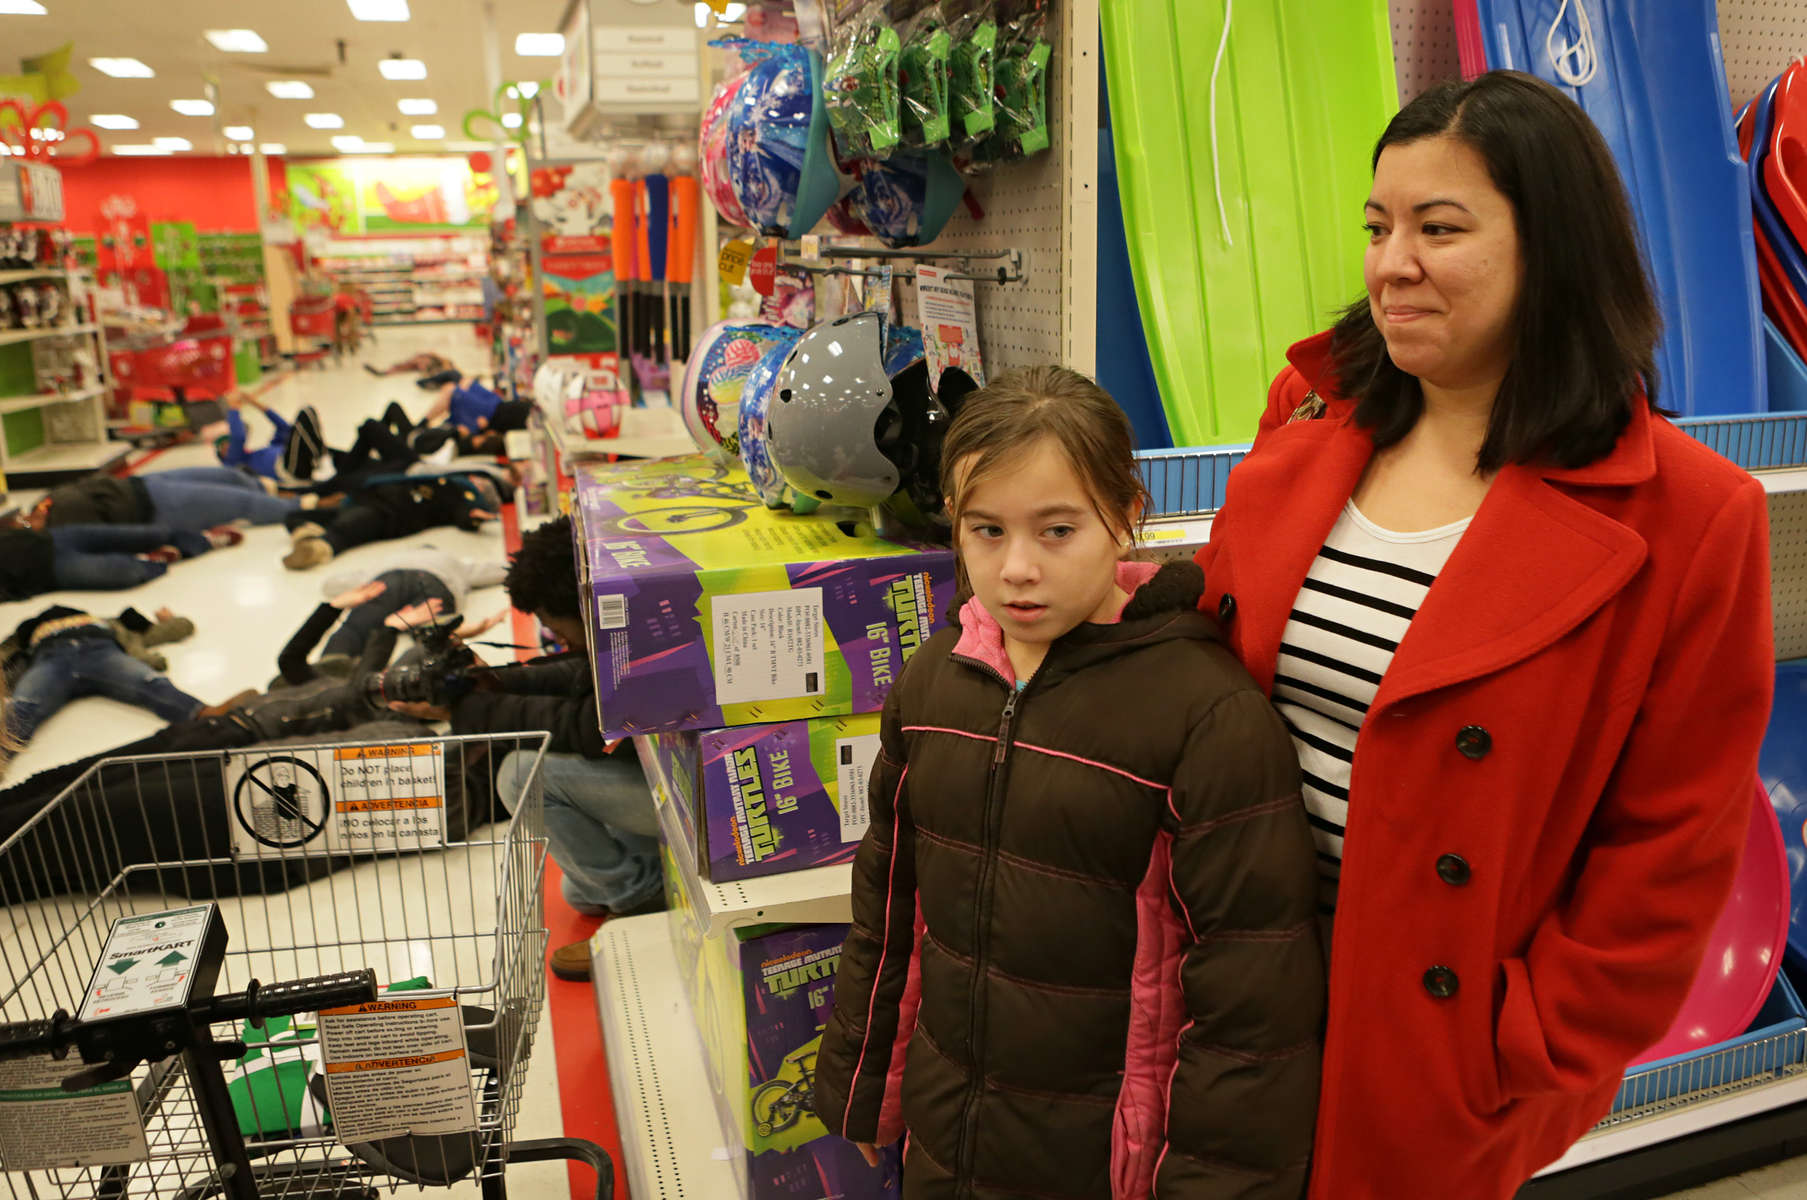 Amelia Alonzo, 9, and her mother Tracy Alonzo look over an aisle where protesters were holding a 4.5 minute die in at the Target in St. Louis County off of South Lindbergh Boulevard on Sunday, Nov. 30, 2014.  {quote}We're explaining to her that people need their voices to be heard and that there is nothing scary going on here{quote} said Tracy Alonzo {quote}We support the protesters, I was was excited to see them here{quote}.  The protesters marched around the store and chanted for 20 minutes before leaving.  Other shoppers had a different reaction to the protests and were visibly shaken by what they saw and heard. Earlier the protesters also marched and chanted in the Walmart off of Telegraph Road. Both stores announced they were closing early and police ordered the protesters to leave, which they did. Photo By David Carson, dcarson@post-dispatch.com